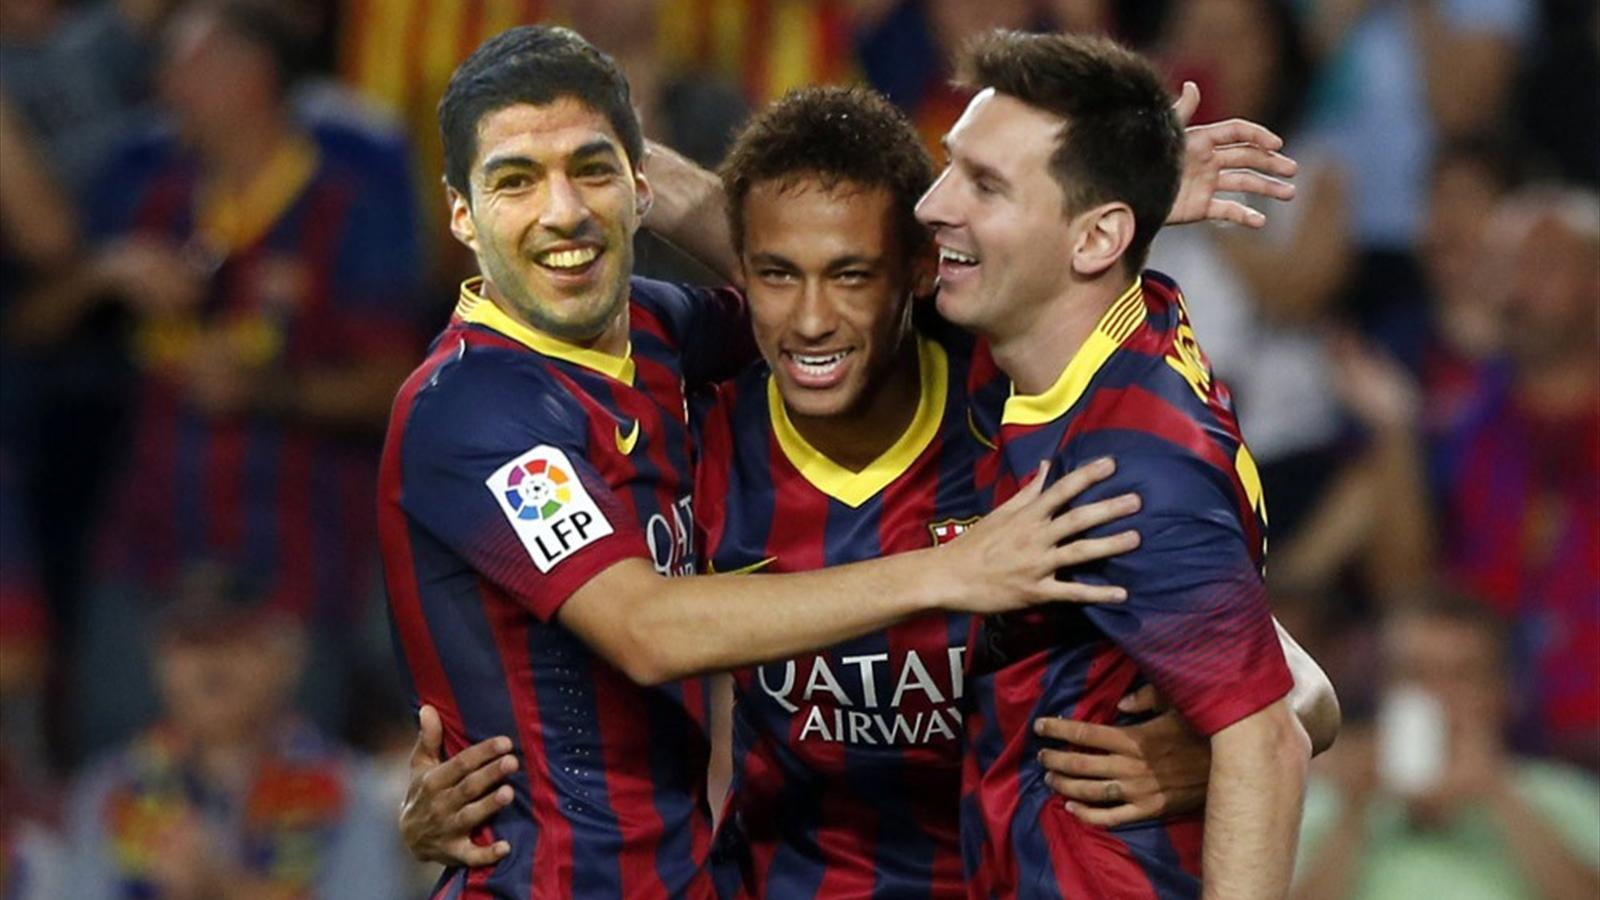 Luis Enrique is excited to see Messi Neymar and Suarez in action 1600x900